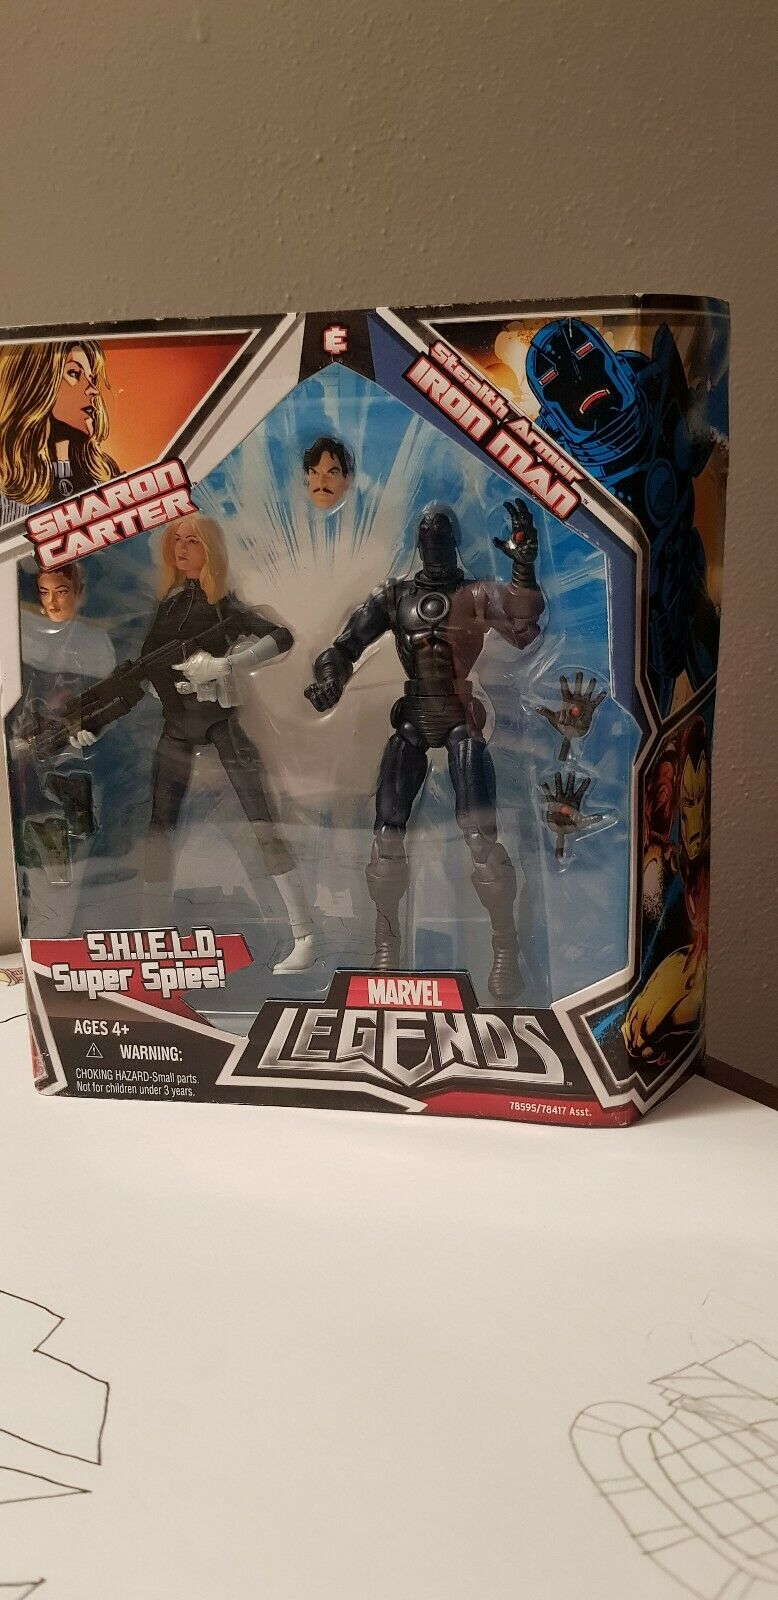 MARVEL LEGENDS shield iron man stealth armor sharon Carter super super super spies hasbro to fd1410